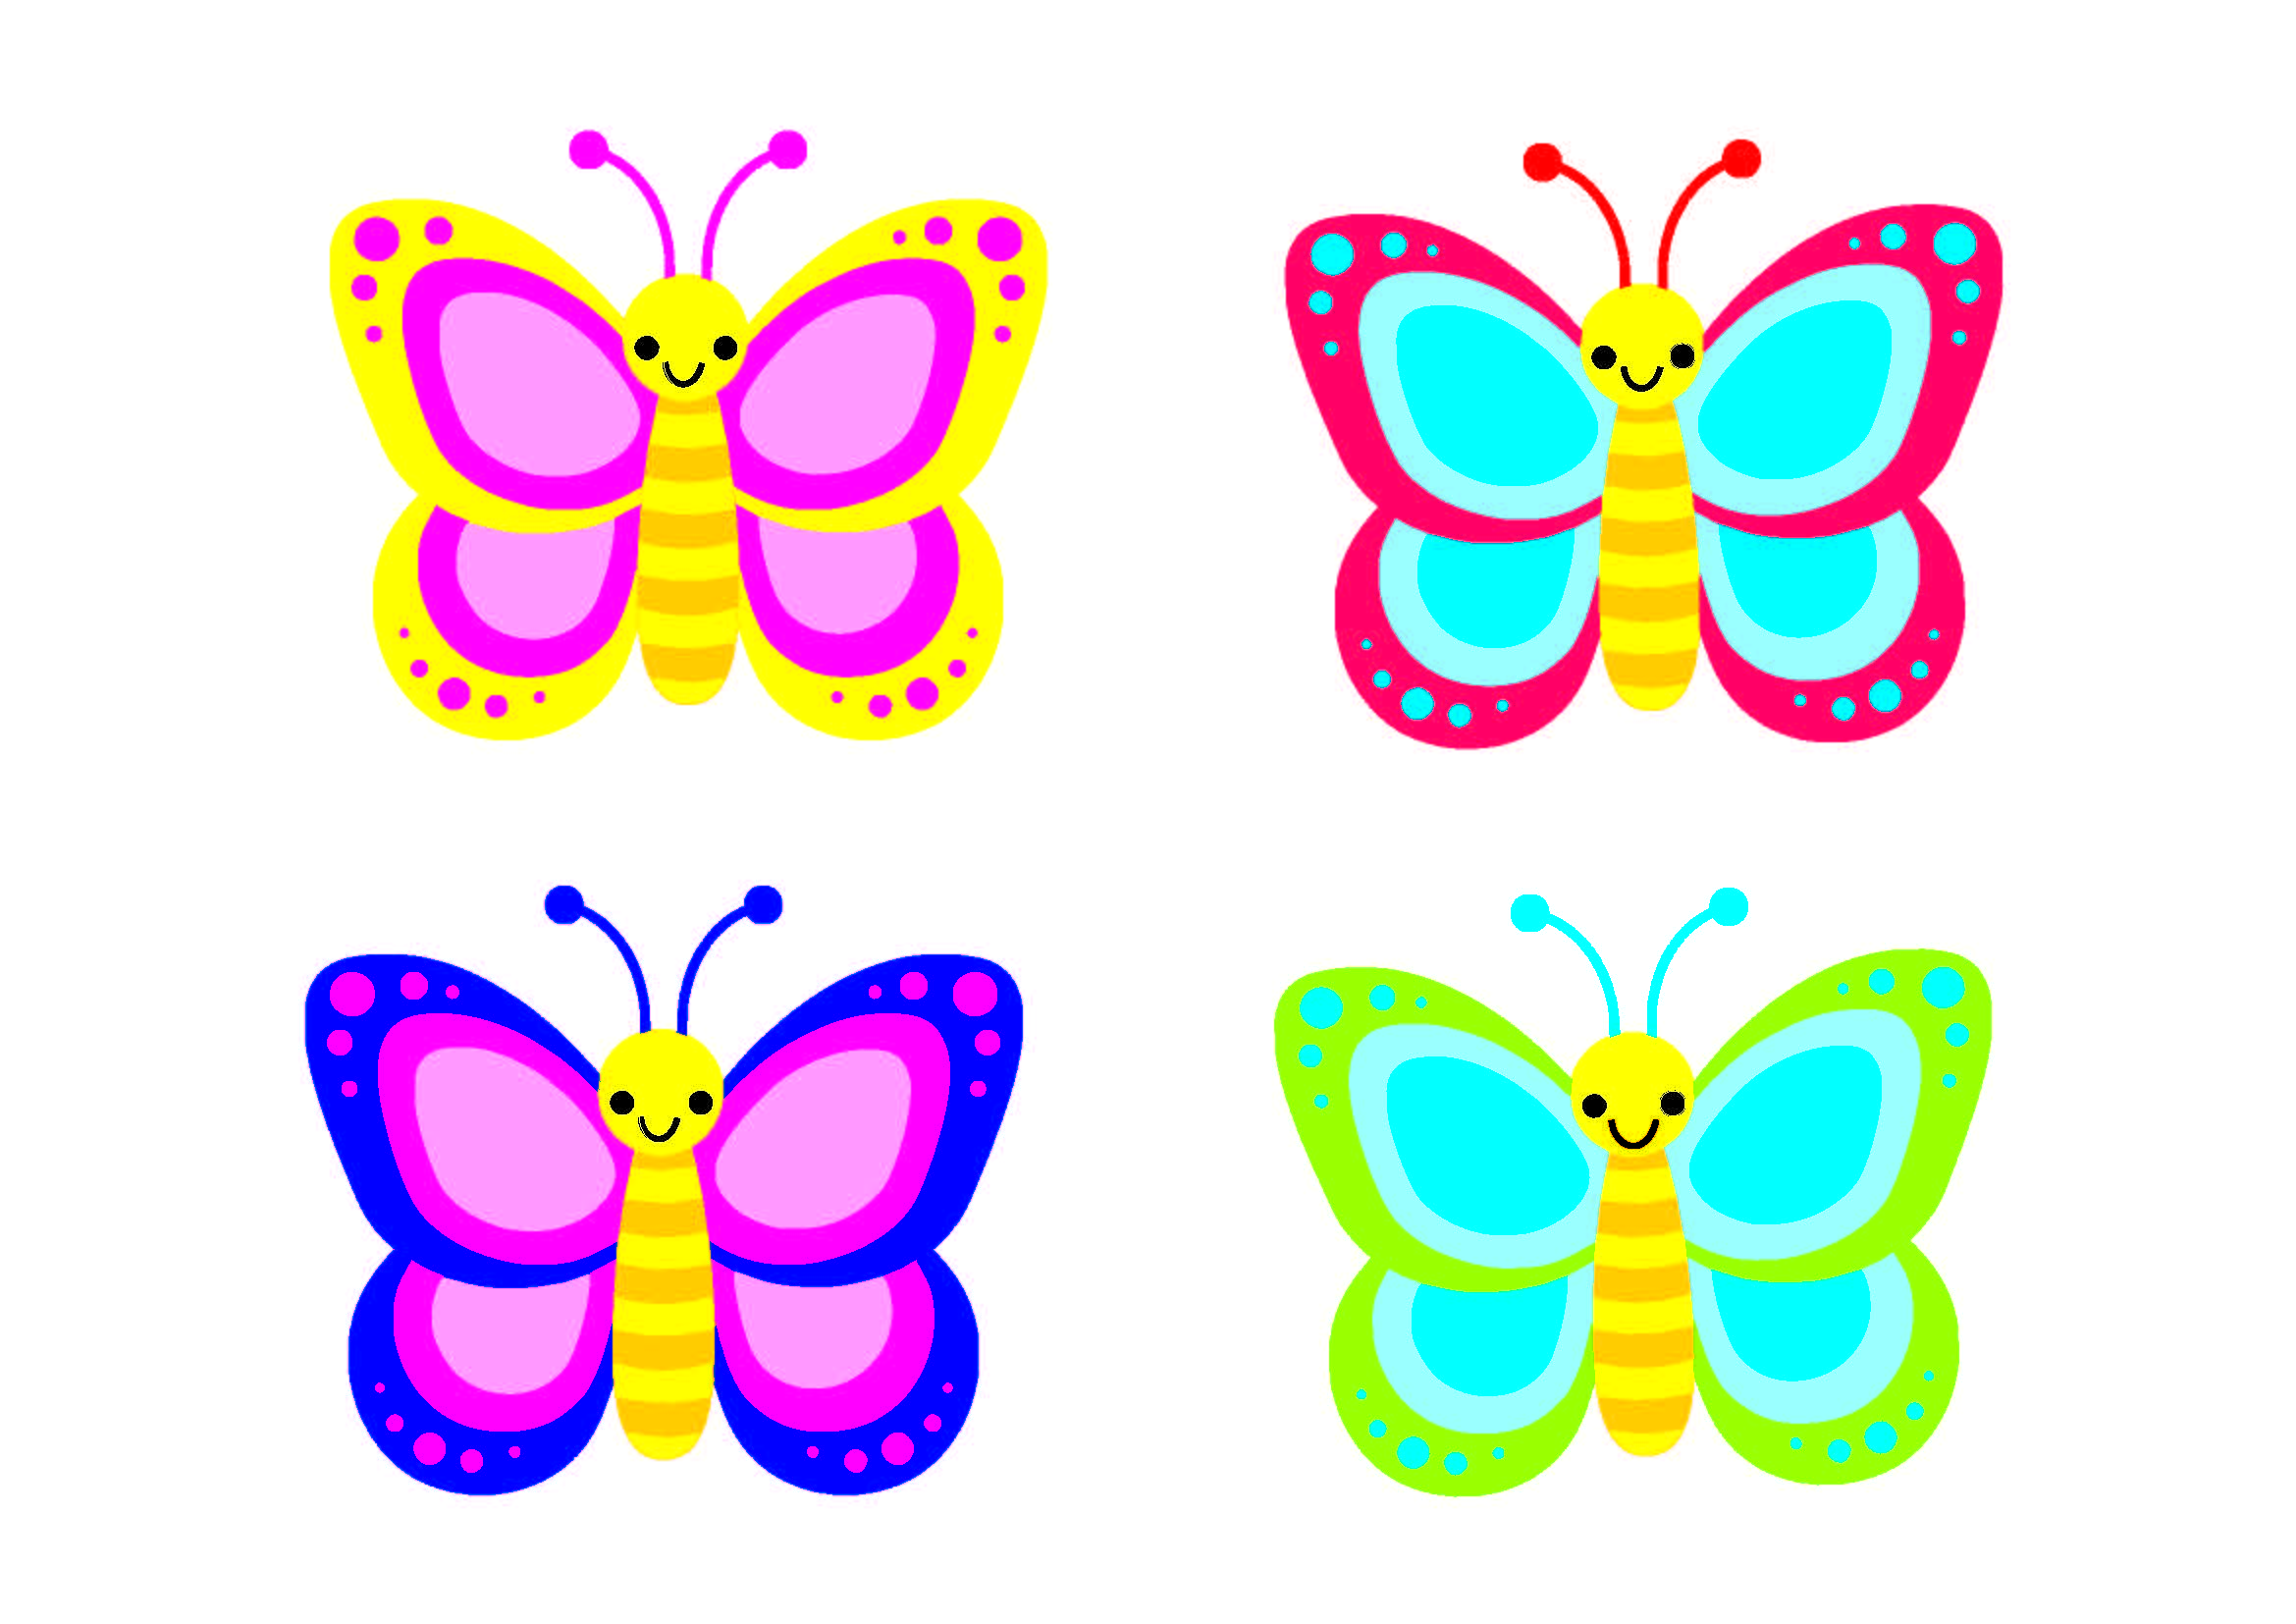 image regarding Butterfly Printable referred to as Bulletin Board Plans - Clroom Doorway Decor - Butterfly